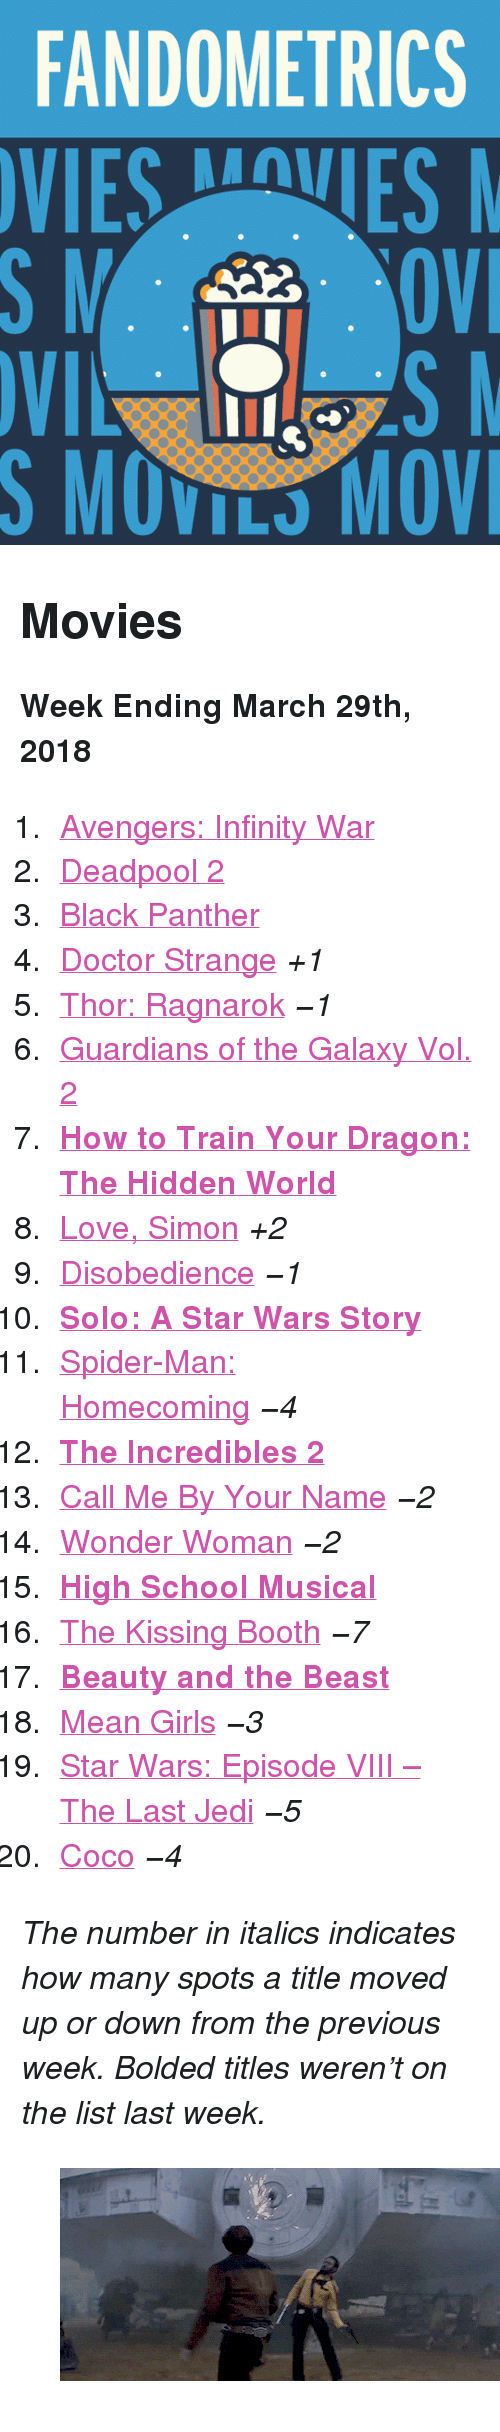 "High School Musical: FANDOMETRICS  SMOVILS MOV <h2>Movies</h2><p><b>Week Ending March 29th, 2018</b></p><ol><li><a href=""http://www.tumblr.com/search/infinity%20war"">Avengers: Infinity War</a></li>  <li><a href=""http://www.tumblr.com/search/deadpool"">Deadpool 2</a></li>  <li><a href=""http://www.tumblr.com/search/black%20panther"">Black Panther</a></li>  <li><a href=""http://www.tumblr.com/search/doctor%20strange"">Doctor Strange</a> <i>+1 </i></li>  <li><a href=""http://www.tumblr.com/search/thor%20ragnarok"">Thor: Ragnarok</a> <i><i>−1</i></i></li>  <li><a href=""http://www.tumblr.com/search/guardians%20of%20the%20galaxy"">Guardians of the Galaxy Vol. 2</a></li>  <li><a href=""http://www.tumblr.com/search/httyd%203""><b>How to Train Your Dragon: The Hidden World</b></a></li>  <li><a href=""http://www.tumblr.com/search/love%20simon"">Love, Simon</a> <i>+2</i></li>  <li><a href=""http://www.tumblr.com/search/disobedience"">Disobedience</a> <i><i>−1</i></i></li>  <li><a href=""http://www.tumblr.com/search/solo%20a%20star%20wars%20story""><b>Solo: A Star Wars Story</b></a></li>  <li><a href=""http://www.tumblr.com/search/spiderman%20homecoming"">Spider-Man: Homecoming</a> <i><i>−4</i></i></li>  <li><a href=""http://www.tumblr.com/search/the%20incredibles""><b>The Incredibles 2</b></a></li>  <li><a href=""http://www.tumblr.com/search/call%20me%20by%20your%20name"">Call Me By Your Name</a> <i><i>−2</i></i></li>  <li><a href=""http://www.tumblr.com/search/wonder%20woman"">Wonder Woman</a> <i><i>−2</i></i></li>  <li><a href=""http://www.tumblr.com/search/high%20school%20musical""><b>High School Musical</b></a></li>  <li><a href=""http://www.tumblr.com/search/the%20kissing%20booth"">The Kissing Booth</a> <i><i>−7</i></i></li>  <li><a href=""http://www.tumblr.com/search/beauty%20and%20the%20beast""><b>Beauty and the Beast</b></a></li>  <li><a href=""http://www.tumblr.com/search/mean%20girls"">Mean Girls</a> <i><i>−3</i></i></li>  <li><a href=""http://www.tumblr.com/search/the%20last%20jedi"">Star Wars: Episode VIII – The Last Jedi</a> <i><i>−5</i></i></li>  <li><a href=""http://www.tumblr.com/search/coco"">Coco</a> <i><i>−4</i></i></li></ol><p><i>The number in italics indicates how many spots a title moved up or down from the previous week. Bolded titles weren't on the list last week.</i></p><figure class=""tmblr-full pinned-target"" data-orig-height=""259"" data-orig-width=""500"" data-tumblr-attribution=""captain-calrissian:WCLDTRV5_YXcrJlKbUBnQQ:ZAhHDr2X9gMPv""><img src=""https://78.media.tumblr.com/24321aa71b3de7614d442d50ccb4f723/tumblr_p7cbaoefXJ1saj50lo1_r1_500.gifv"" data-orig-height=""259"" data-orig-width=""500""/></figure>"